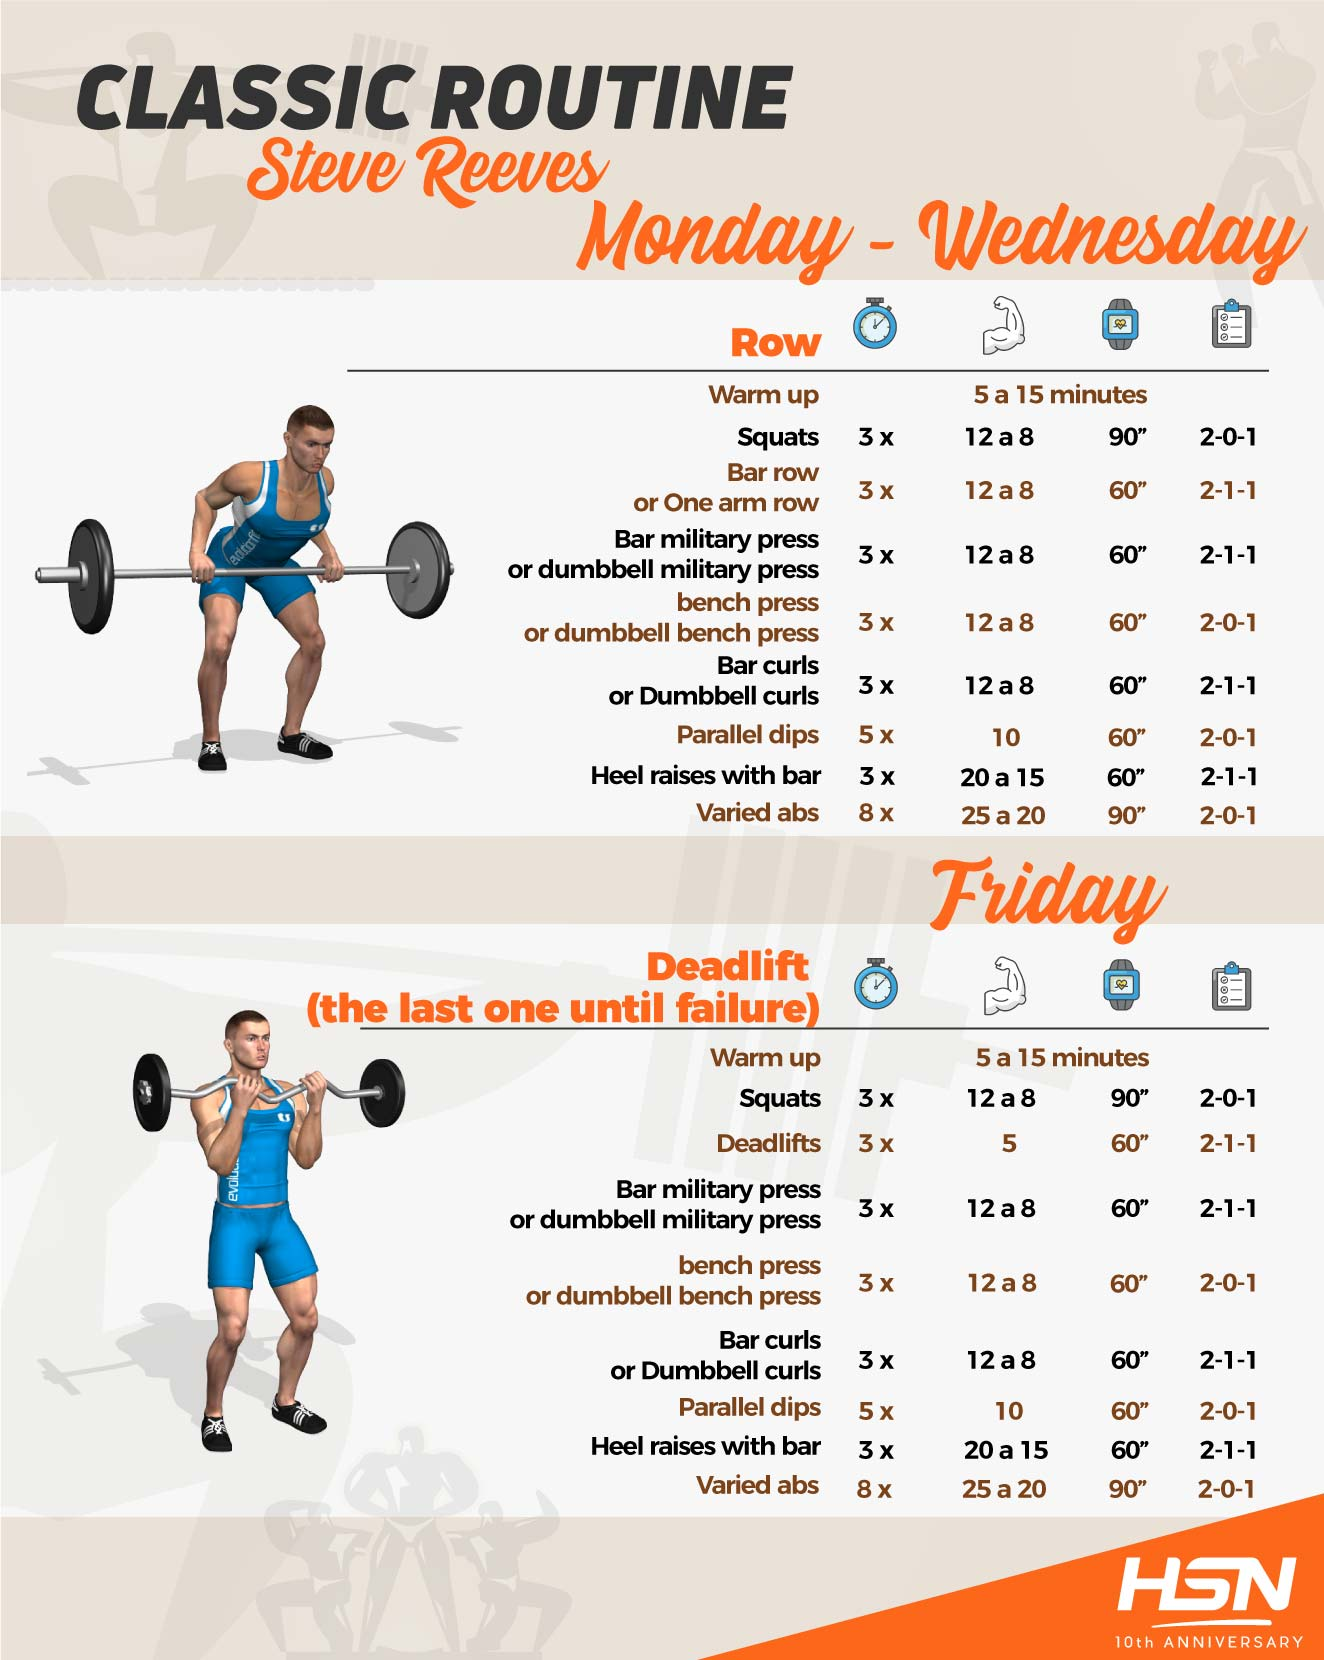 Classic routine Steve Reeves